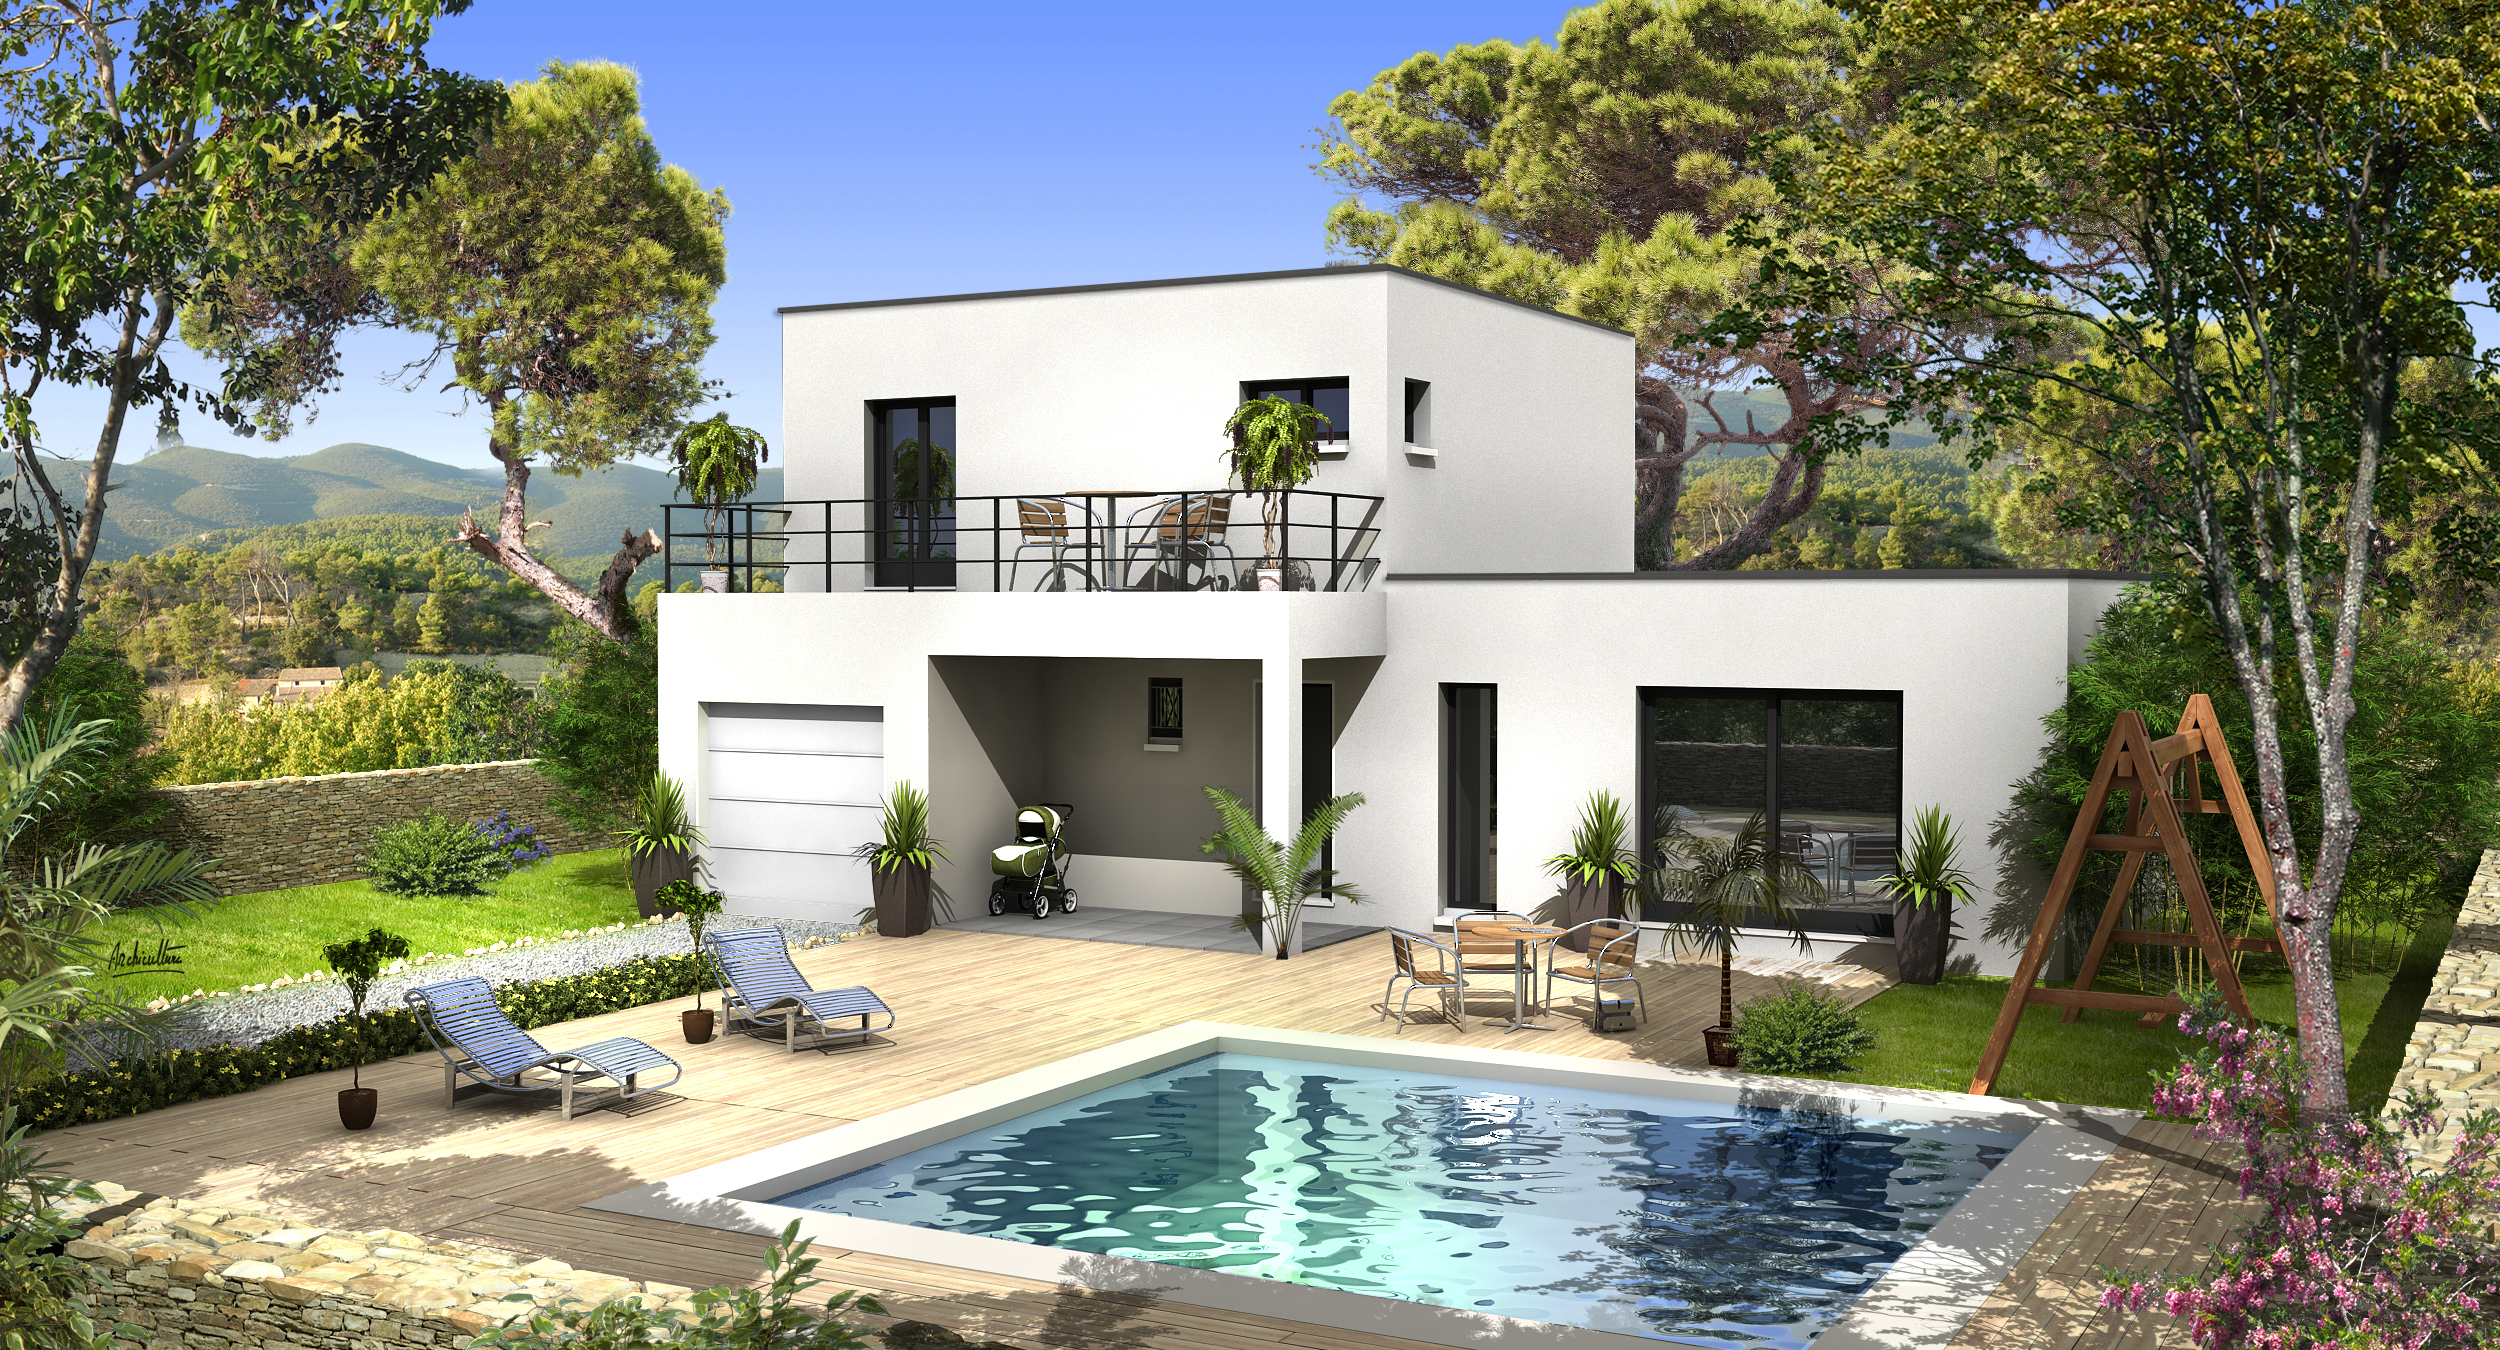 Villas prisme constructeur maisons individuelles la for Site construction maison